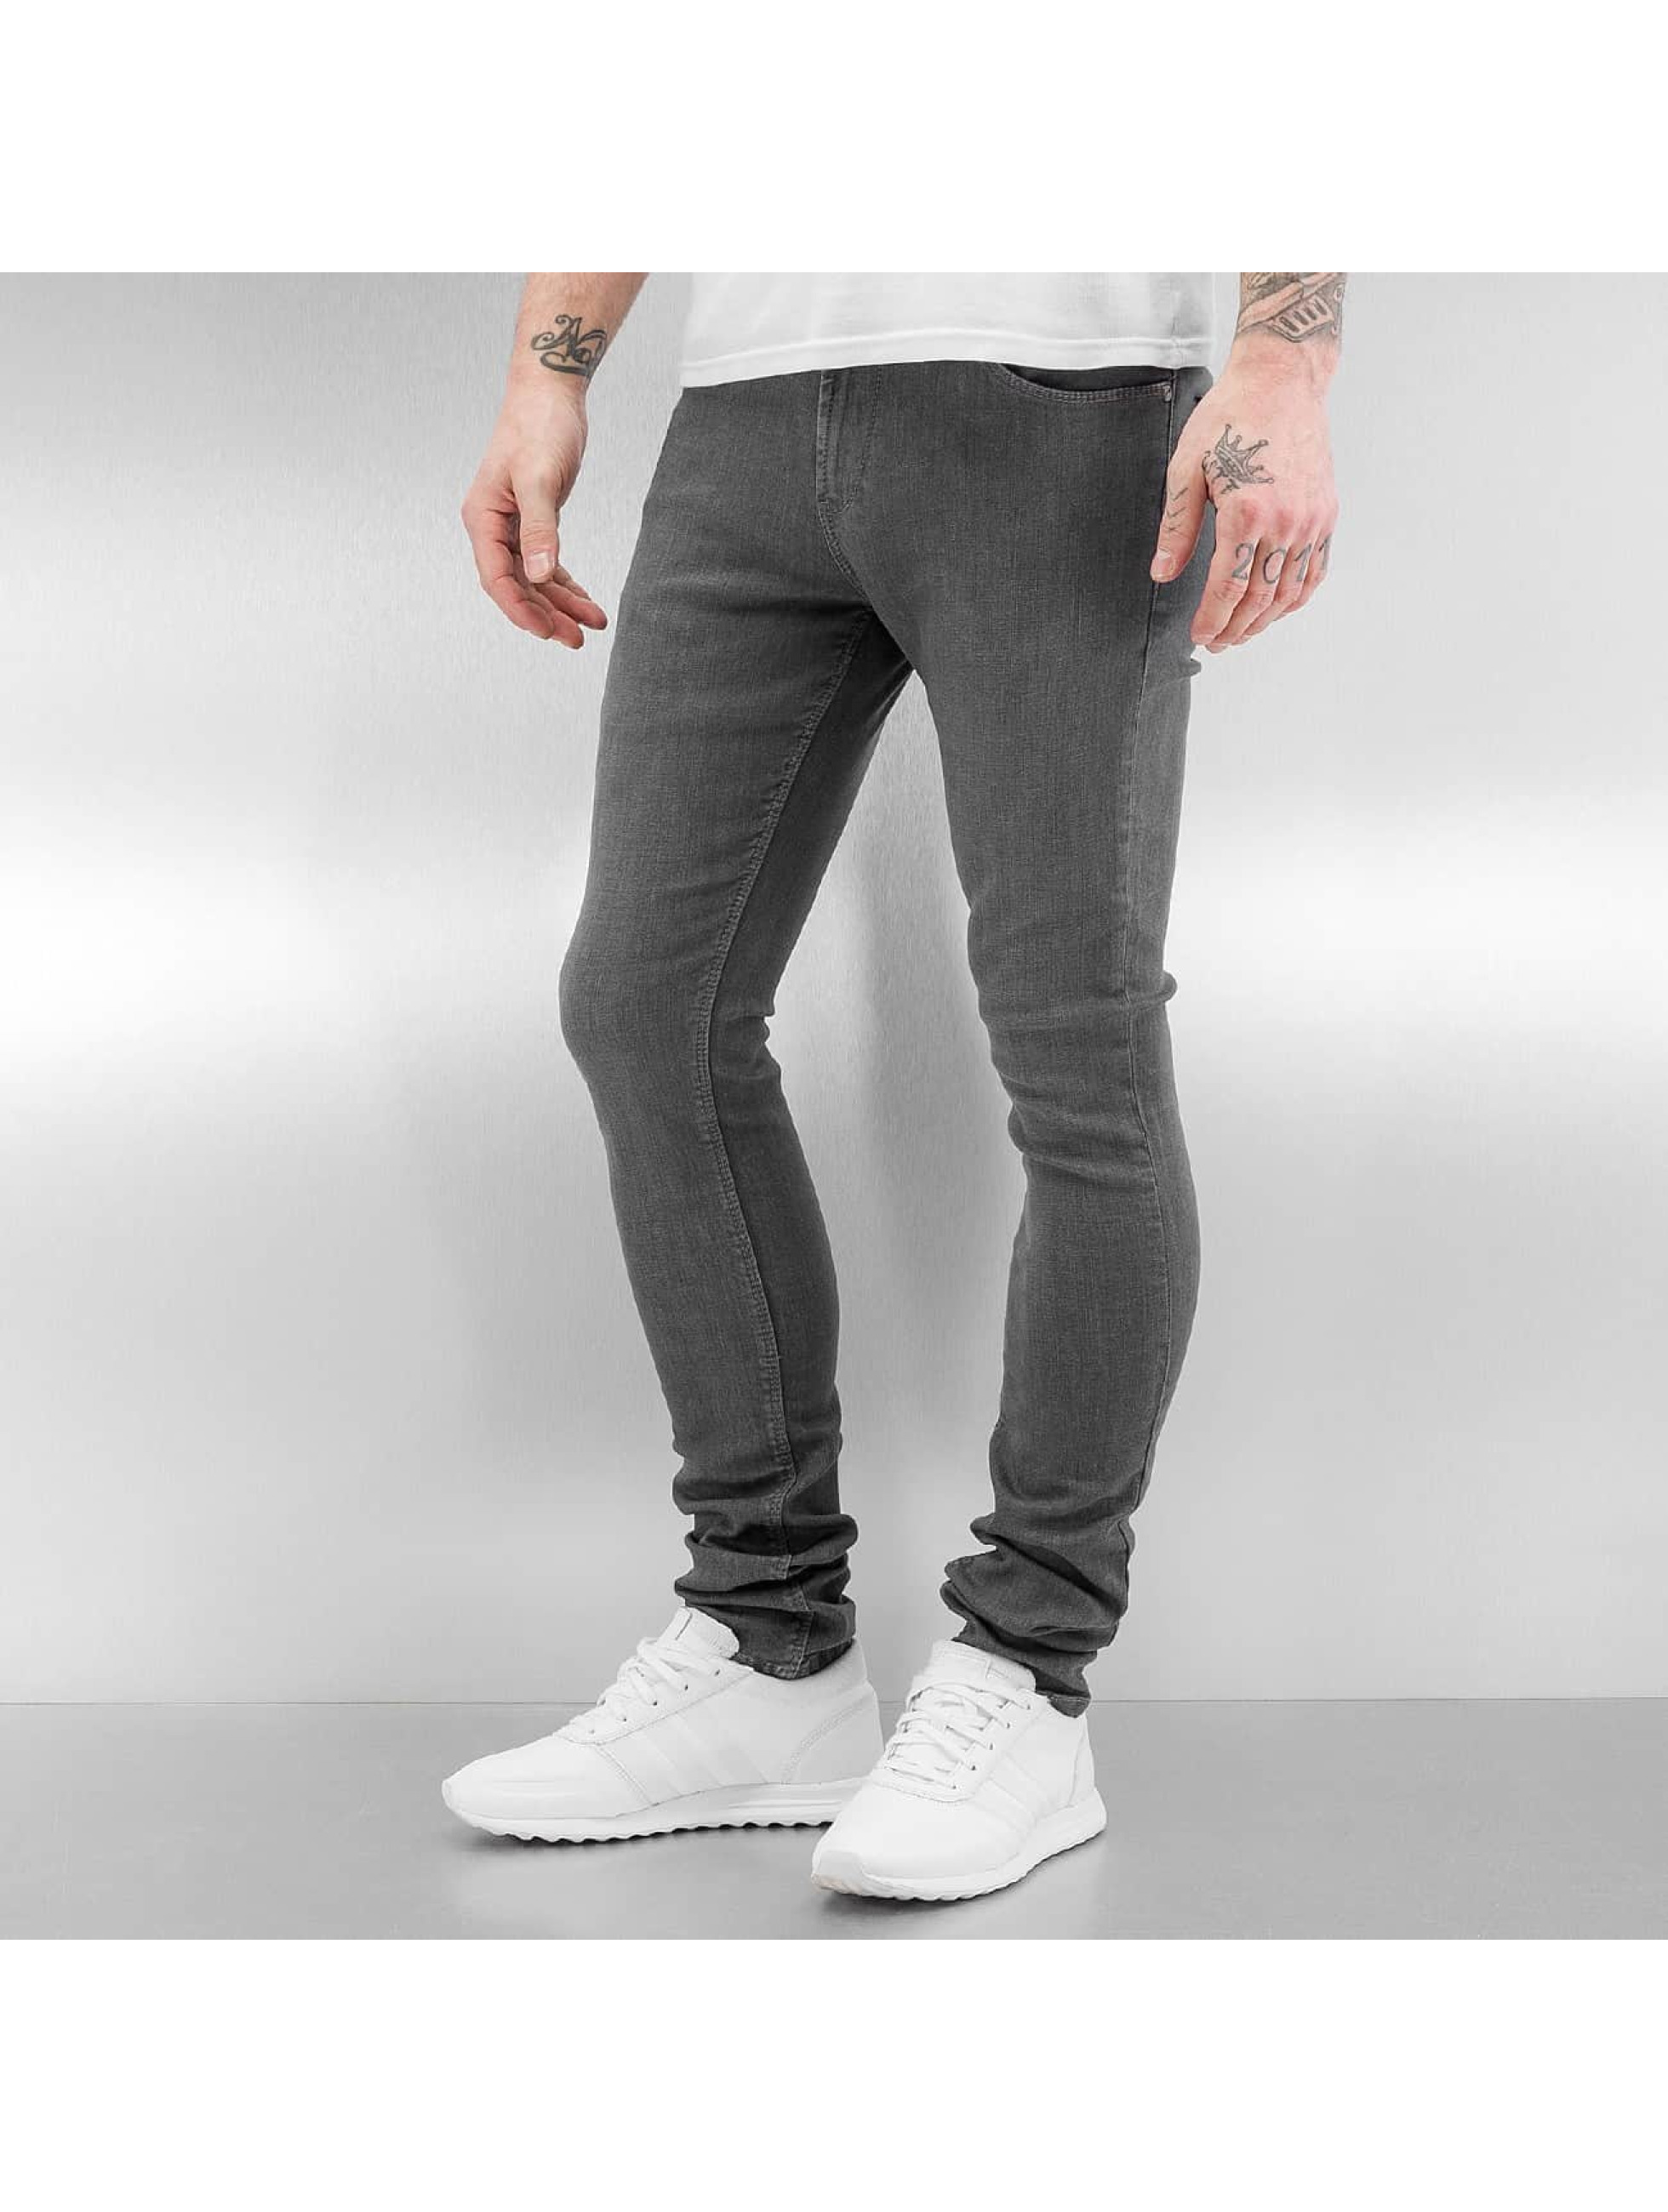 Reell Jeans Männer Skinny Jeans Radar Stretch Super Slim Fit in grau